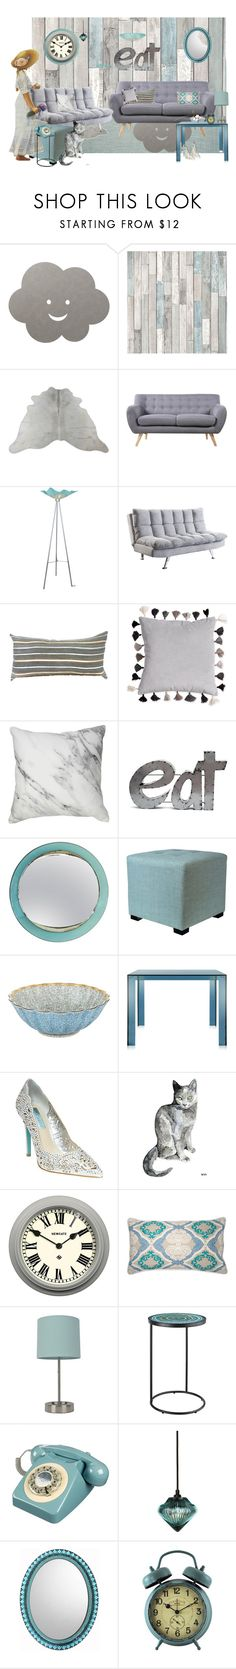 """""""❤ Home Sweet Home"""" by catfabricsandbuttons ❤ liked on Polyvore featuring interior, interiors, interior design, home, home decor, interior decorating, Safavieh, LIND DNA, Madison and Van Teal"""